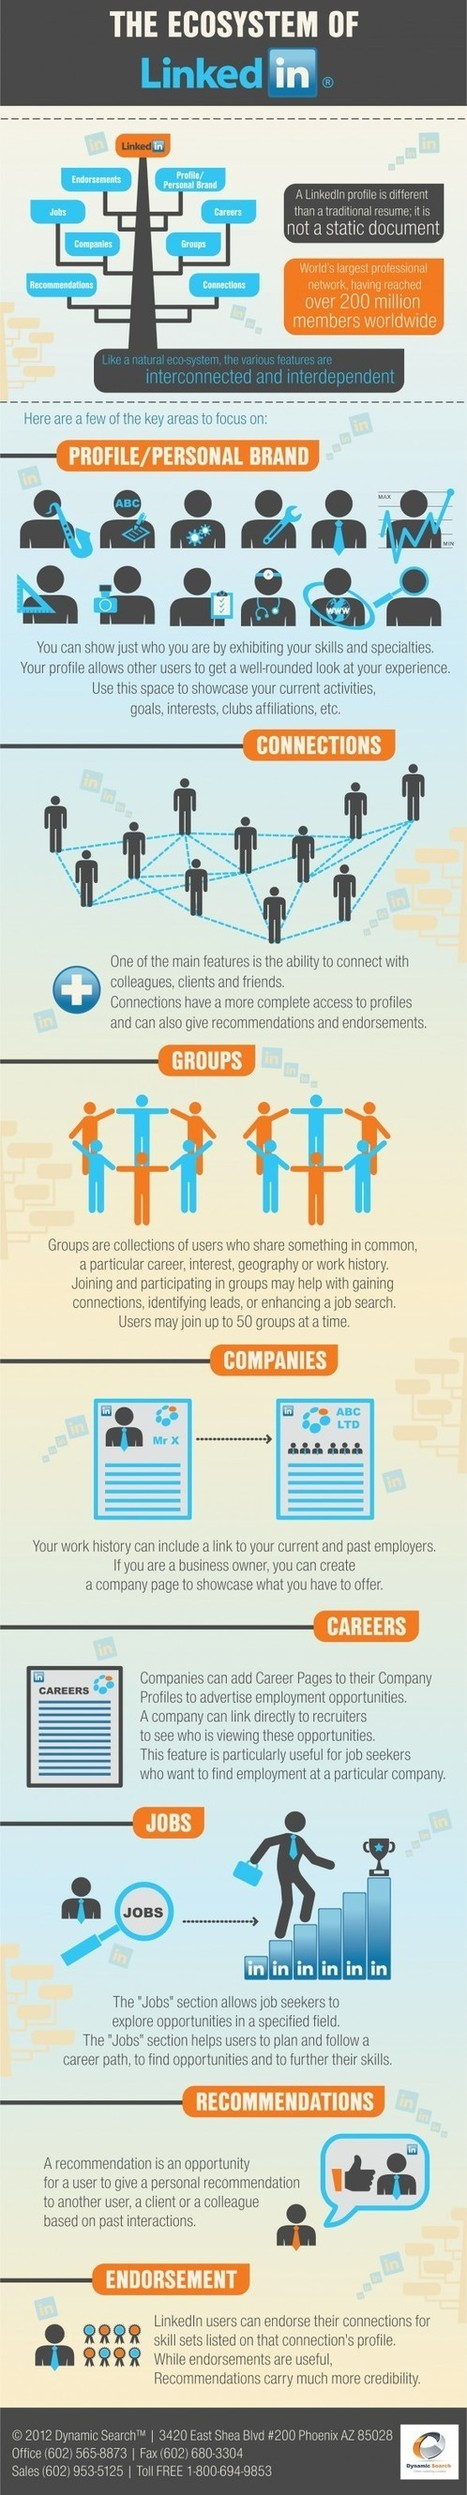 Understand LinkedIn in 30 Seconds — Infographic | Social media and education | Scoop.it